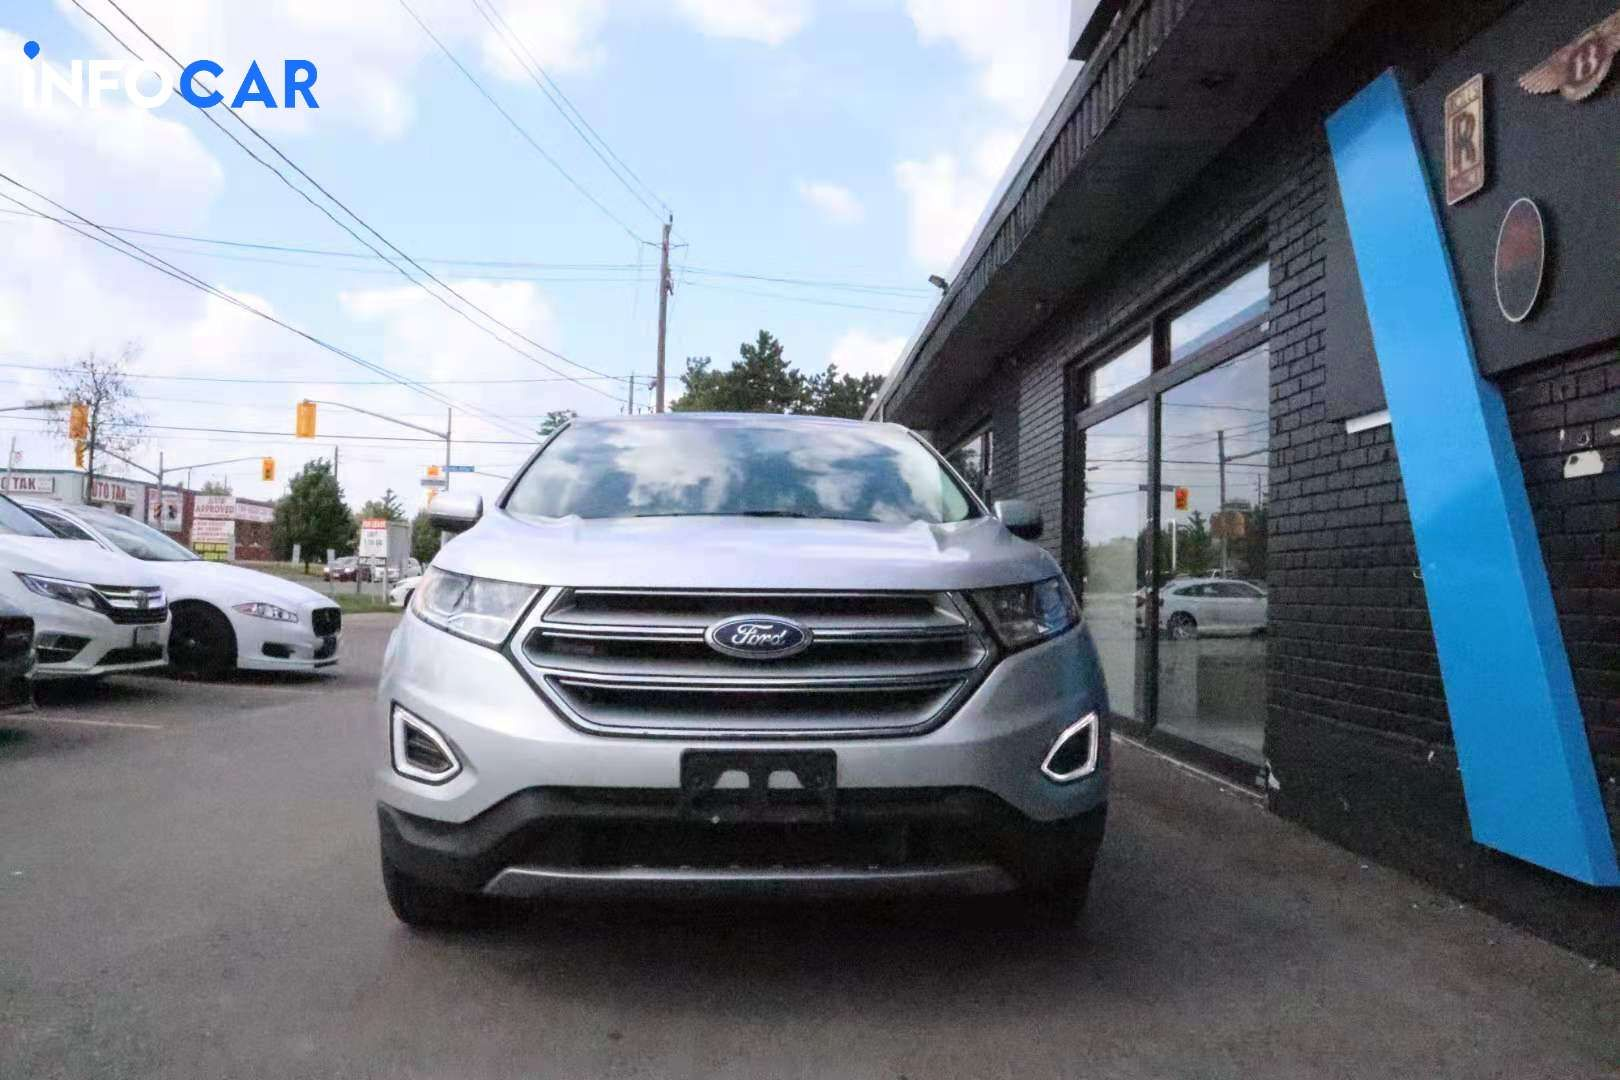 2017 Ford Edge null - INFOCAR - Toronto's Most Comprehensive New and Used Auto Trading Platform